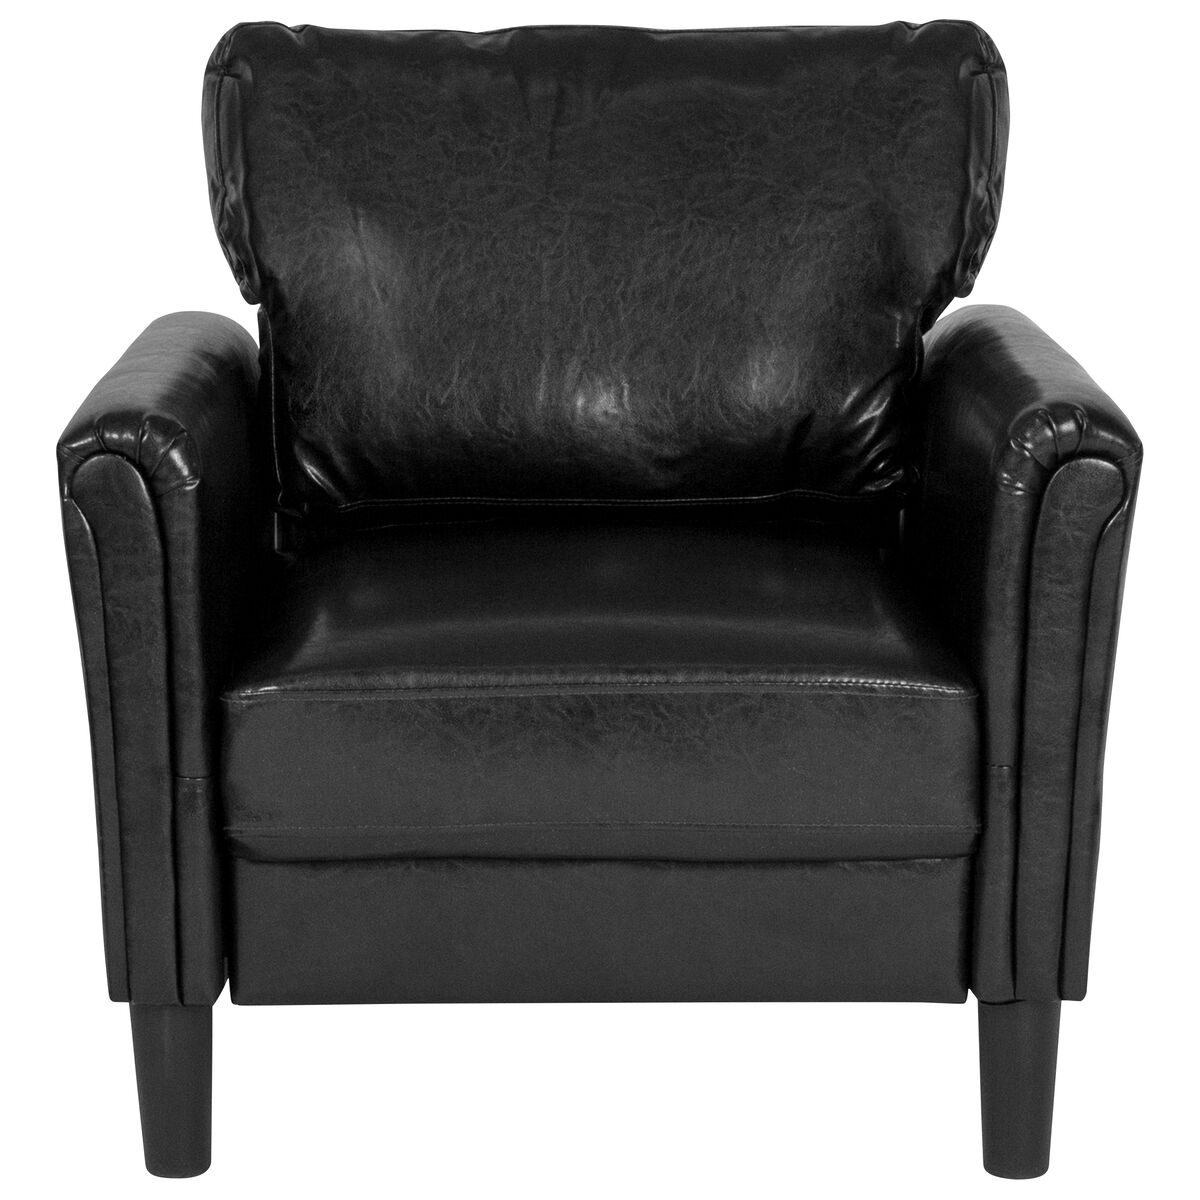 Wondrous Bari Upholstered Chair In Black Leather Pabps2019 Chair Design Images Pabps2019Com